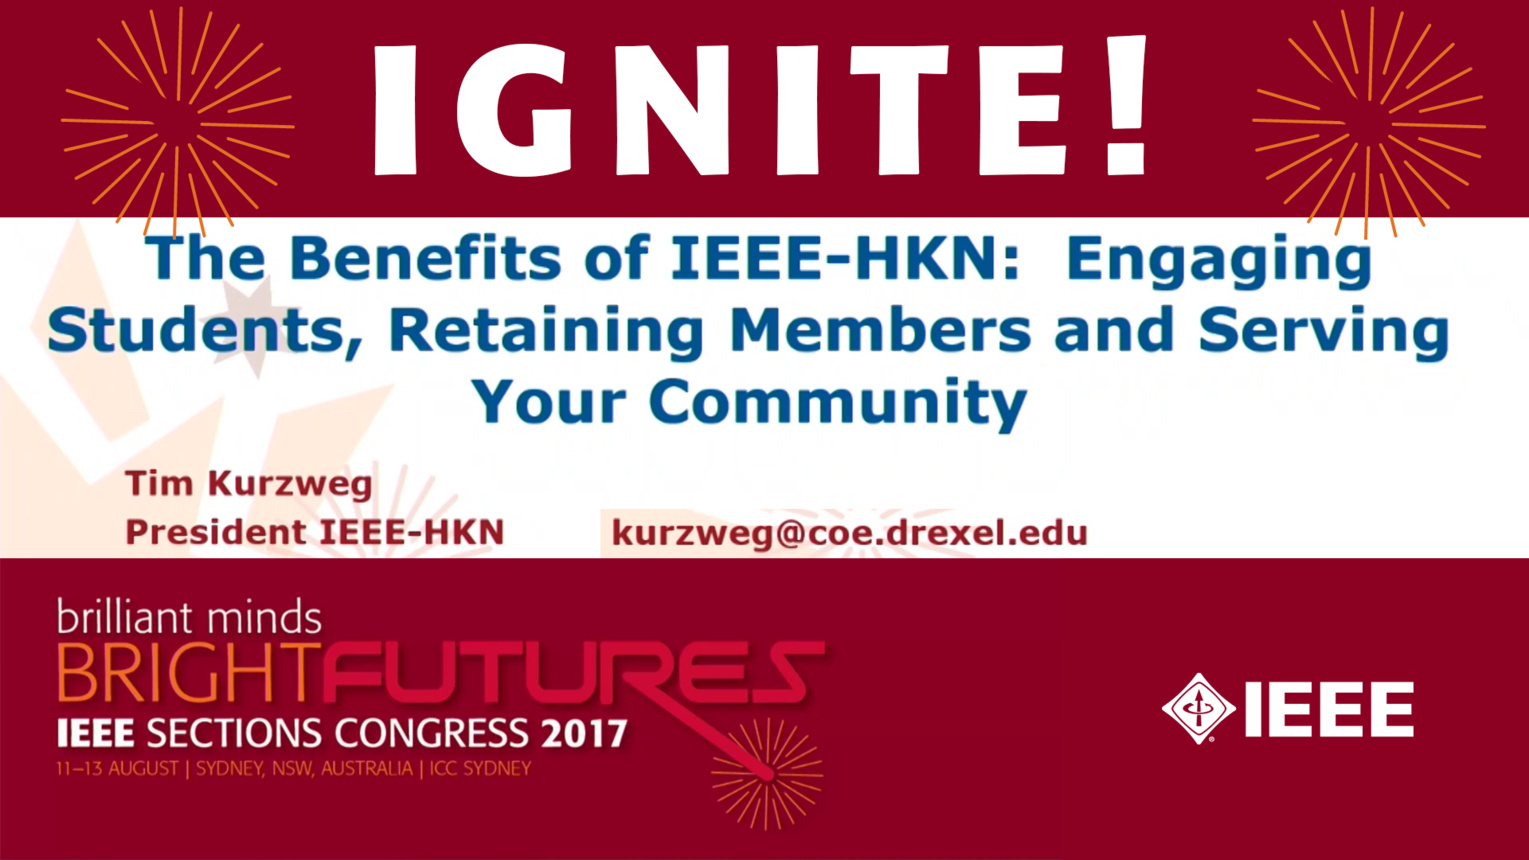 Benefits of IEEE-HKN - Tim Kurzweg - Ignite: Sections Congress 2017